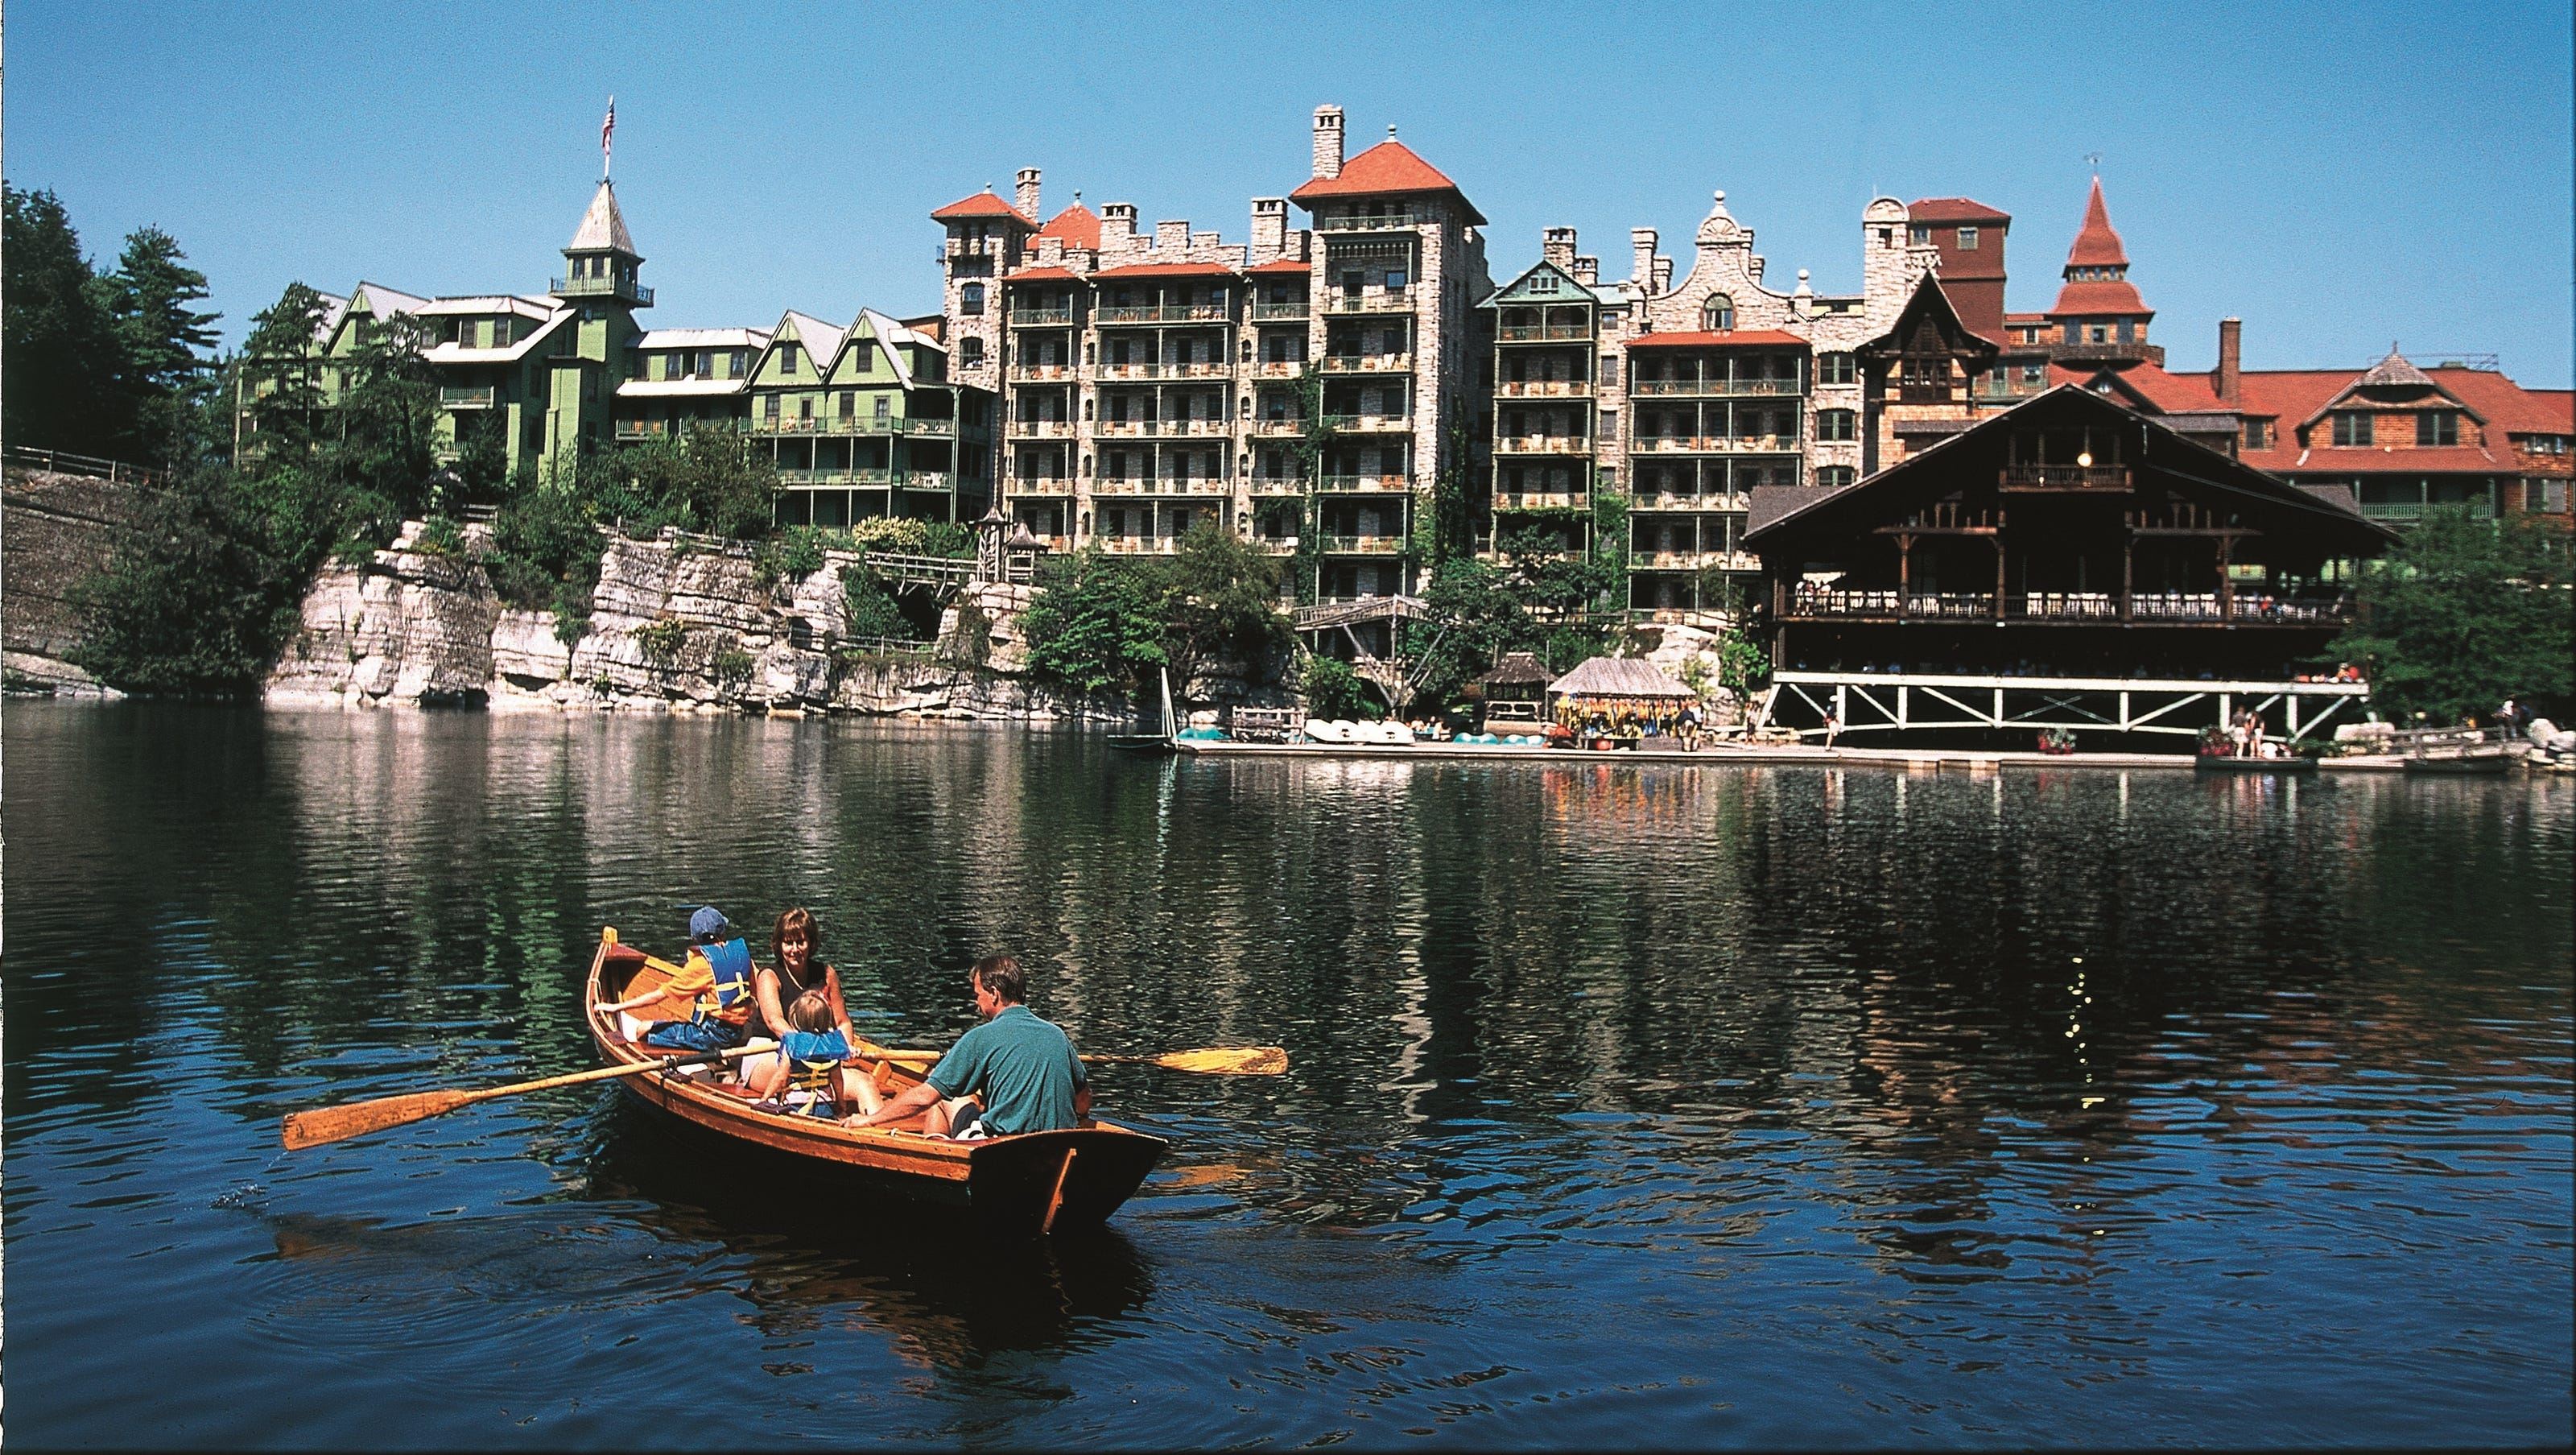 vacation like it's 1899 at n.y. resort